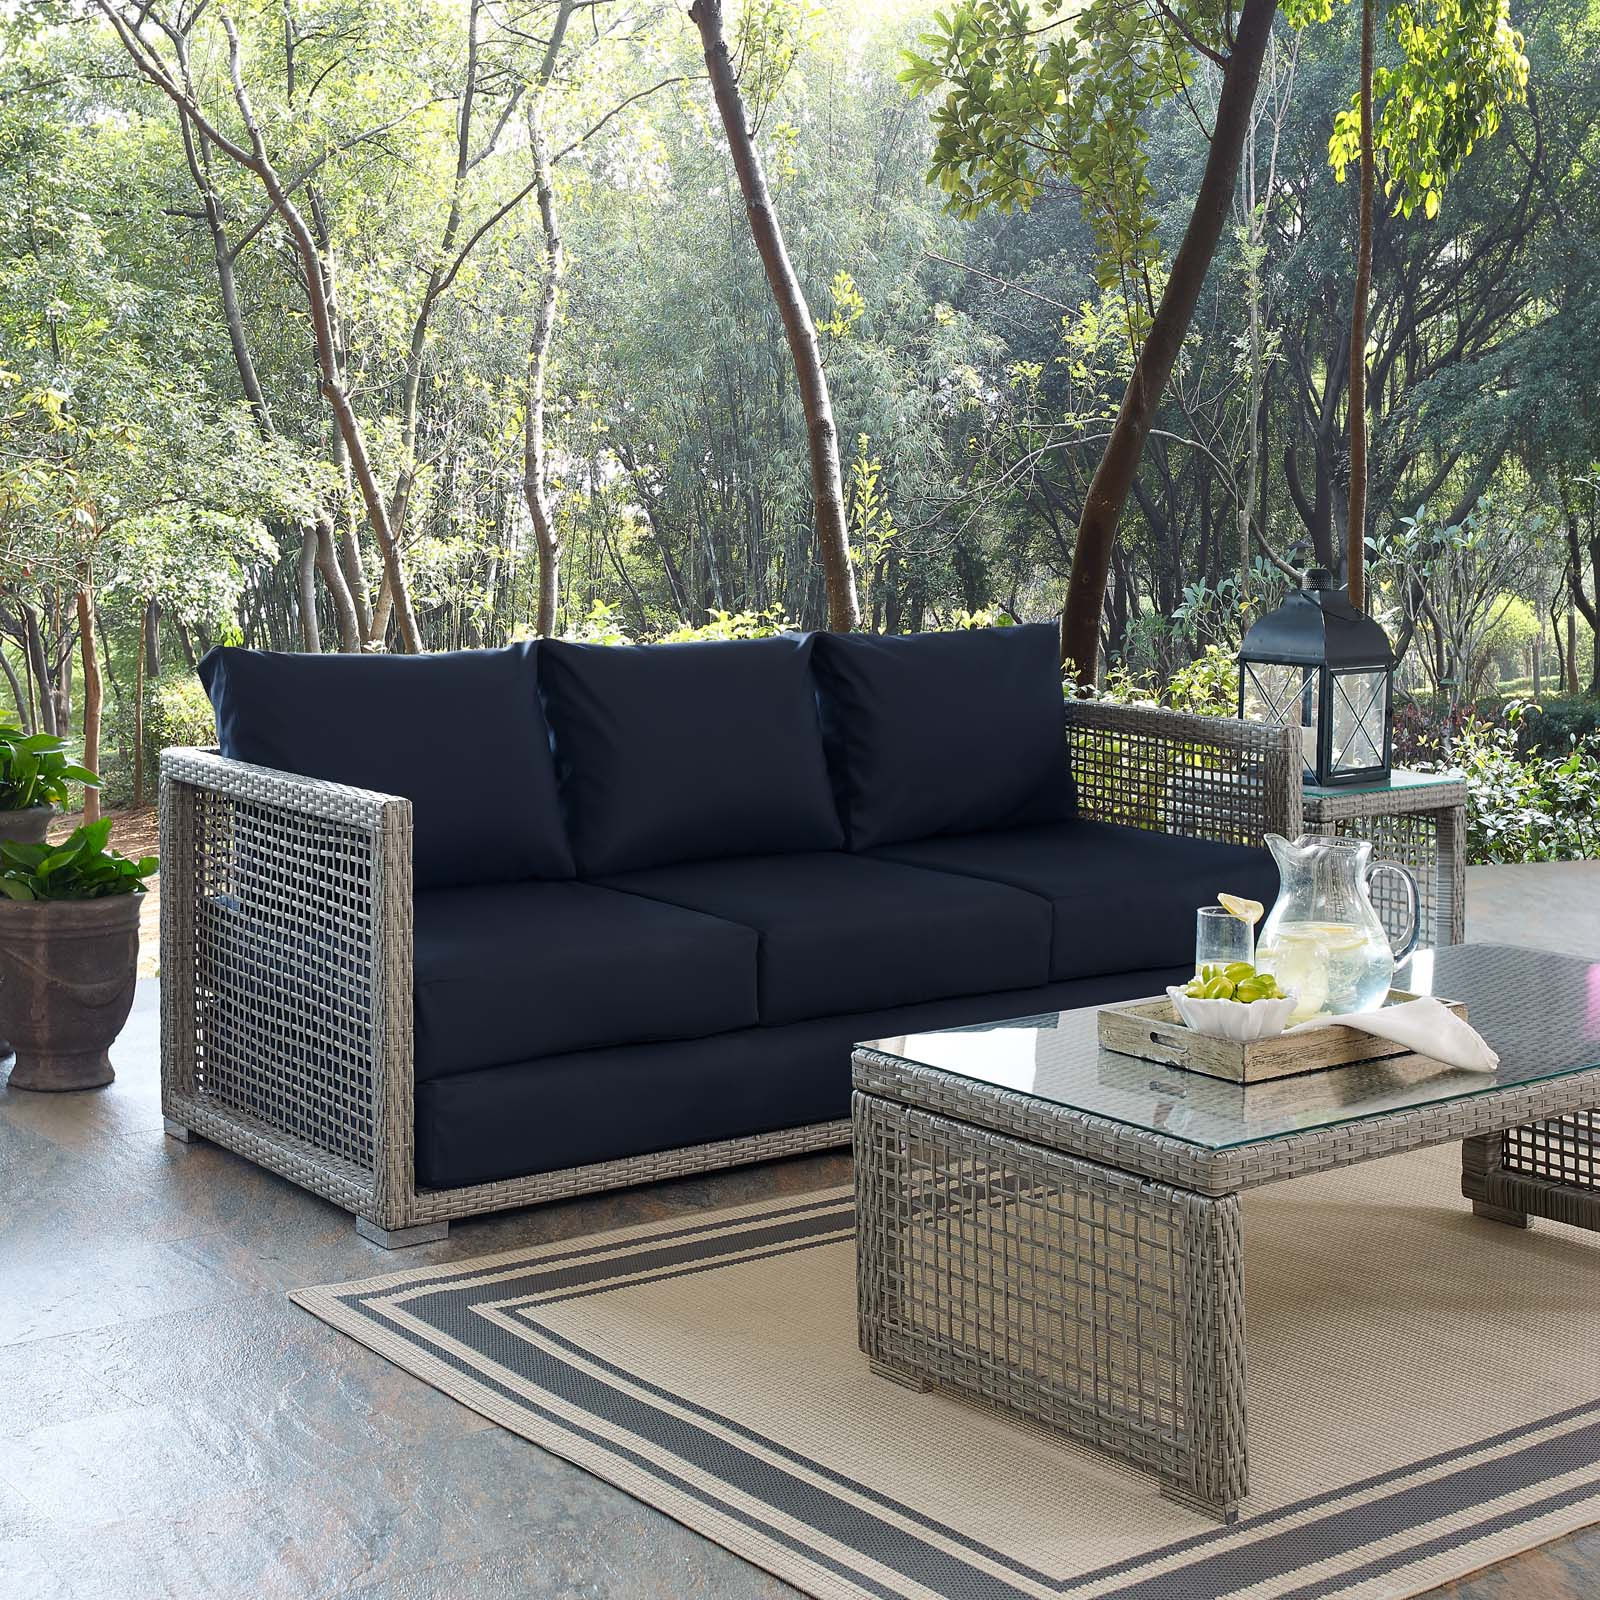 Outdoor Sofa Rattan Aura Patio Wicker Rattan Sofa In Gray And Navy By Modway